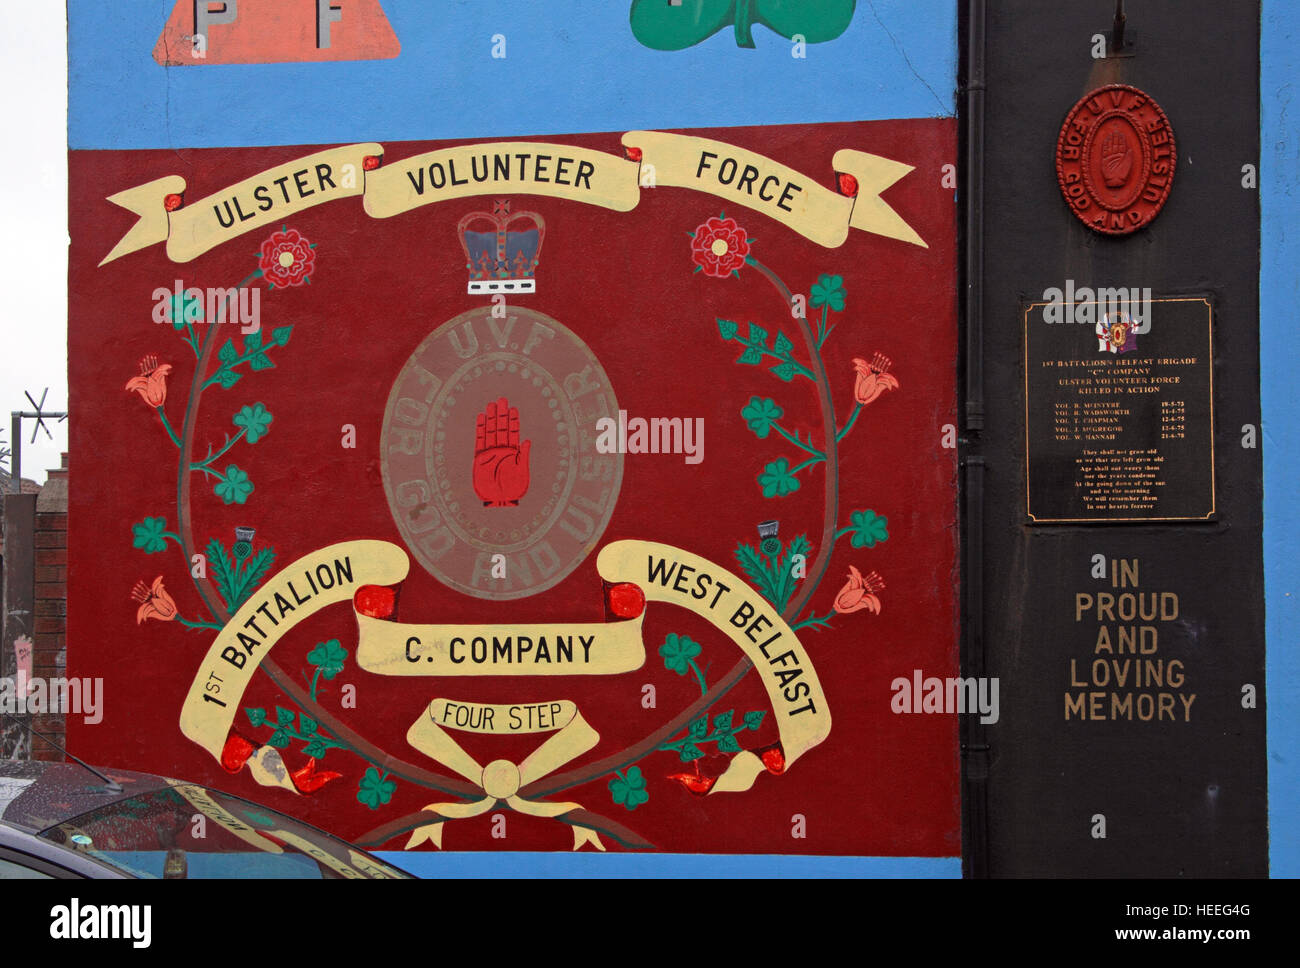 West Belfast Unionist, Loyalist Murals,Ulster Volunteer Force C-Company - Stock Image